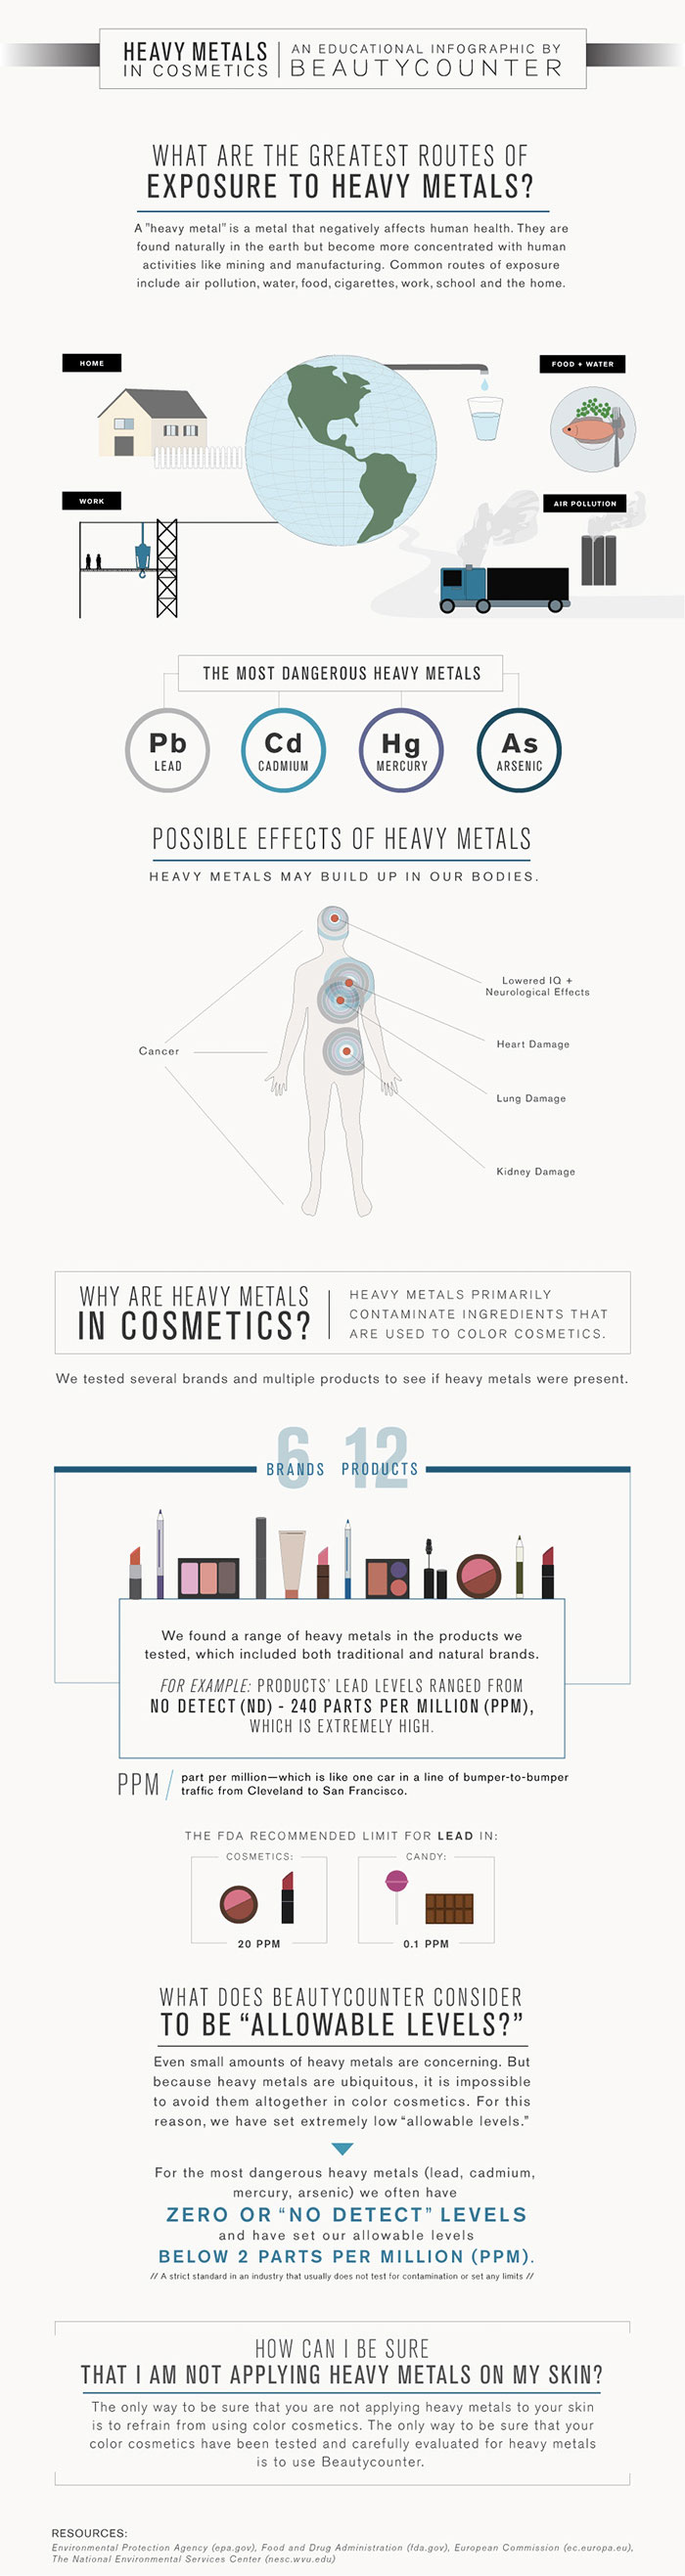 heavy-metals-in-cosmetics